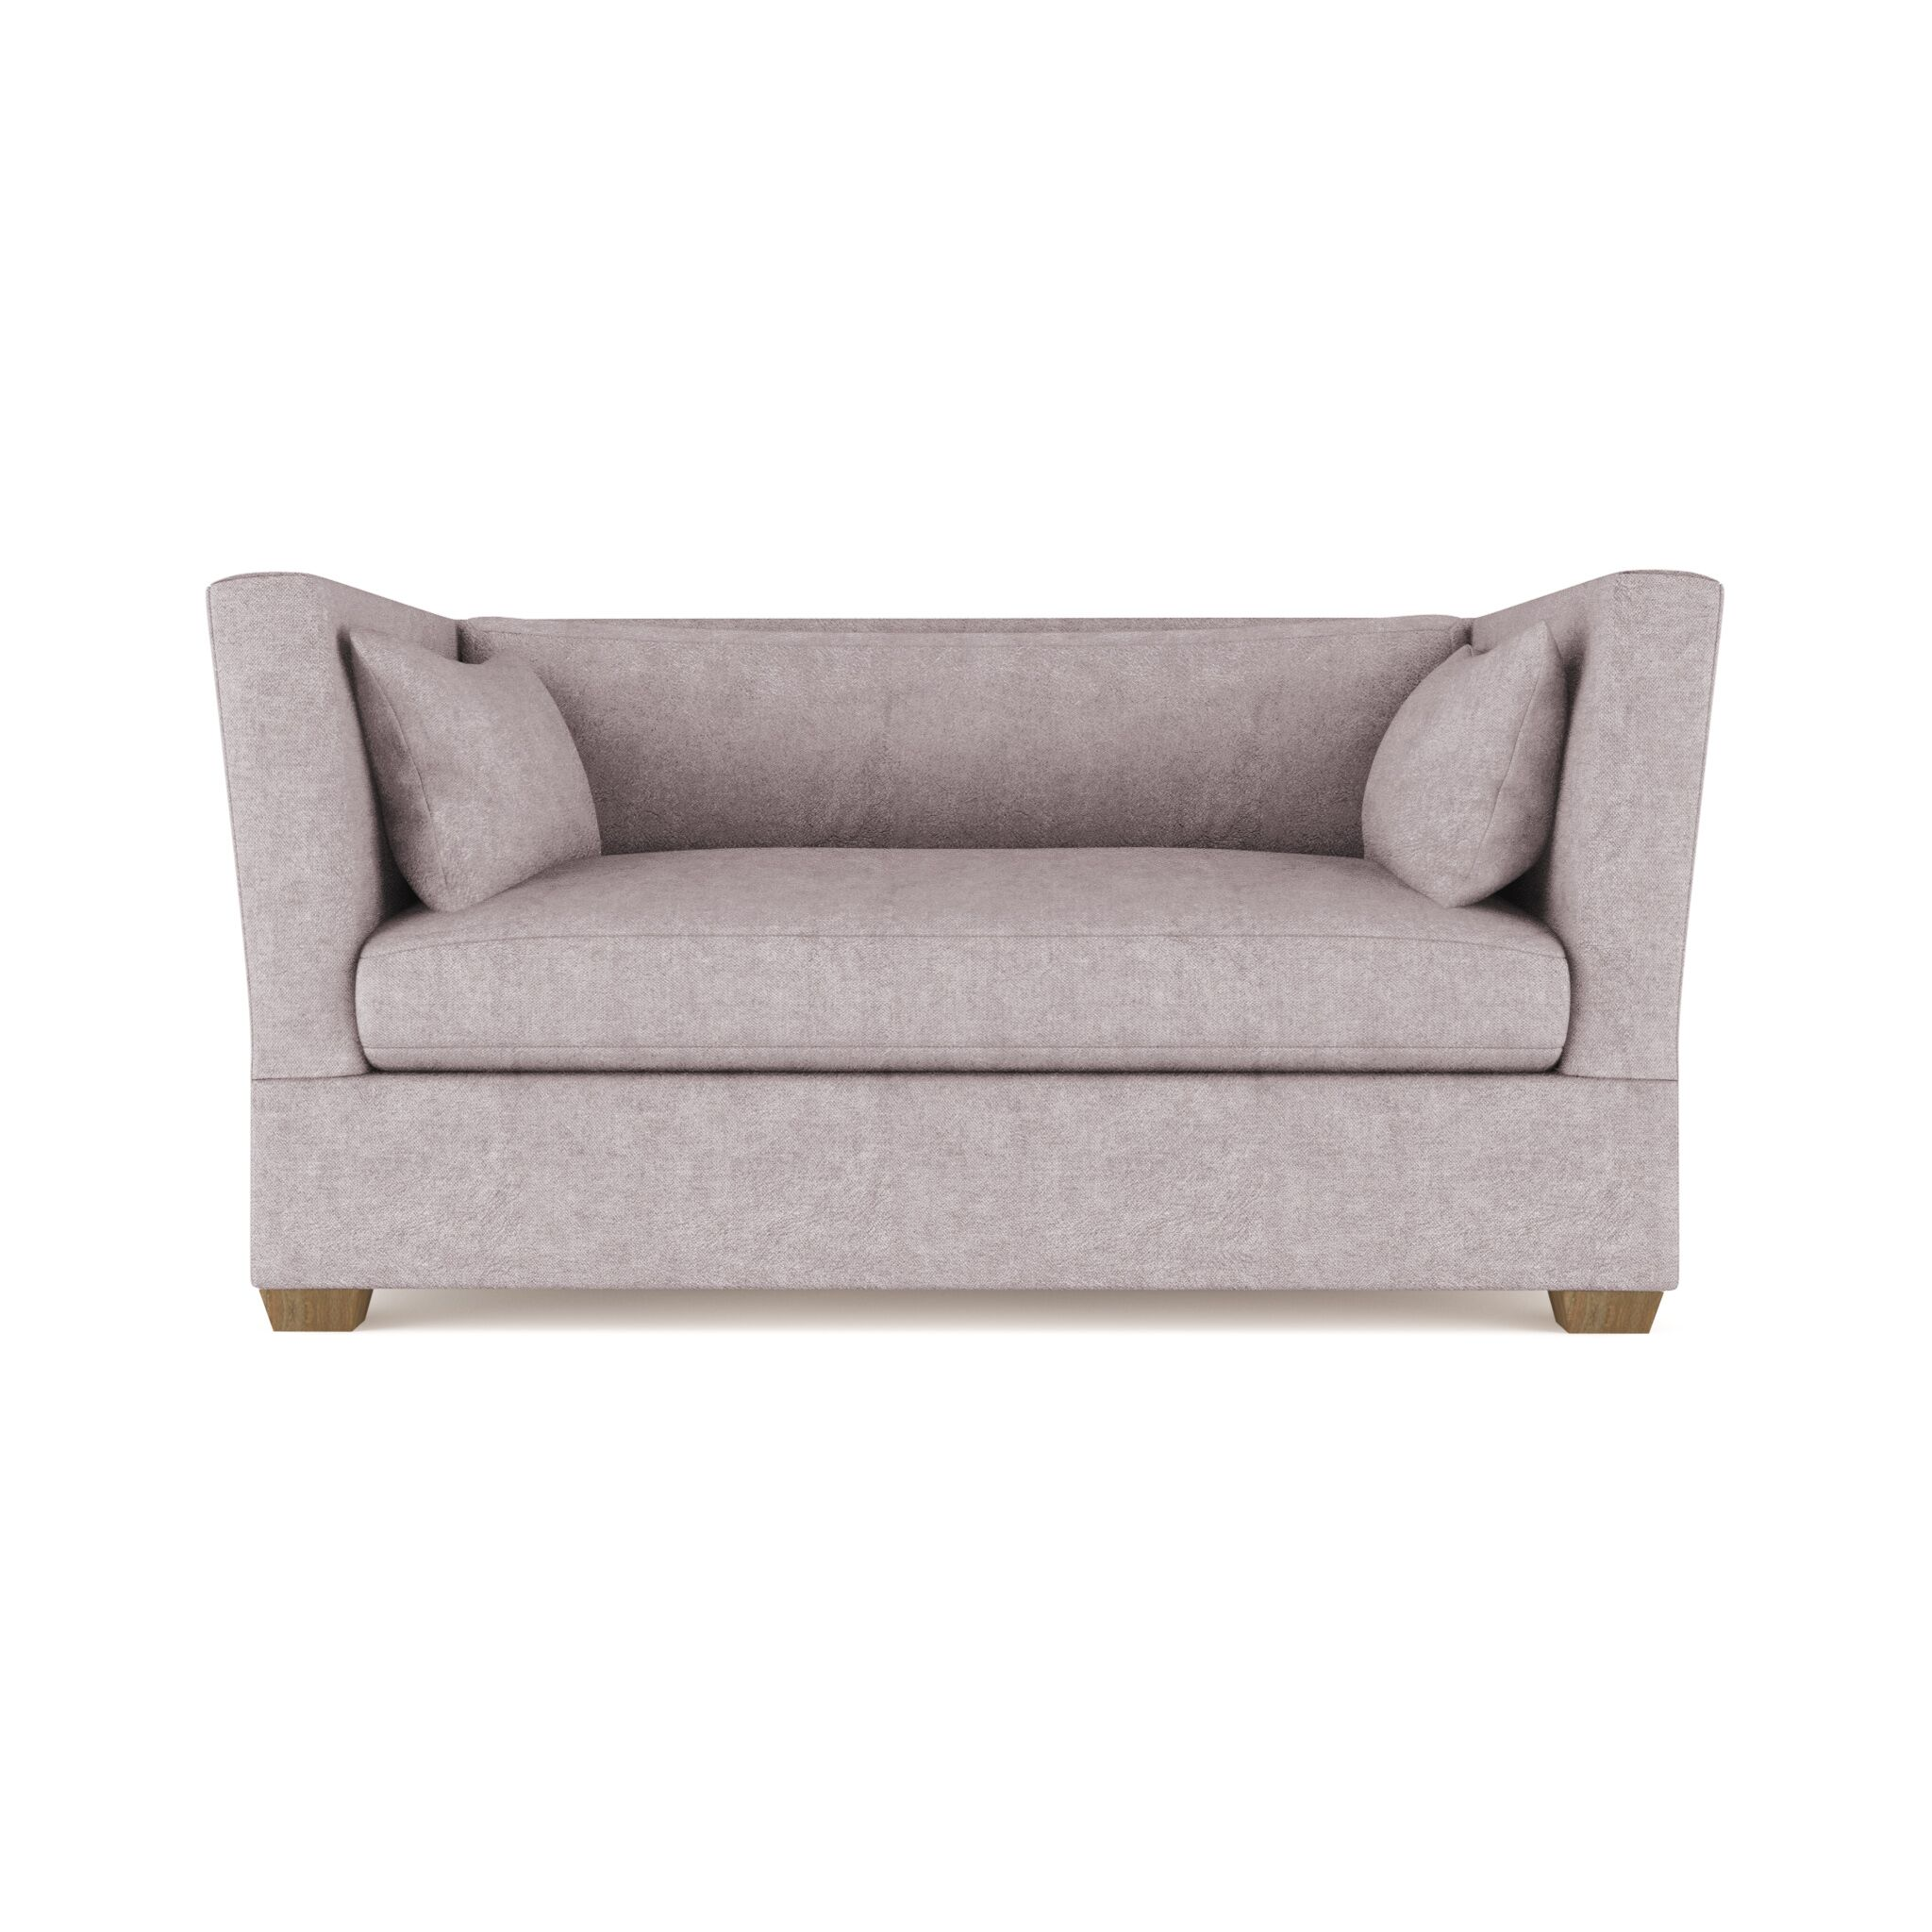 Leung Sofa Upholstery: Sandstone, Size: 31